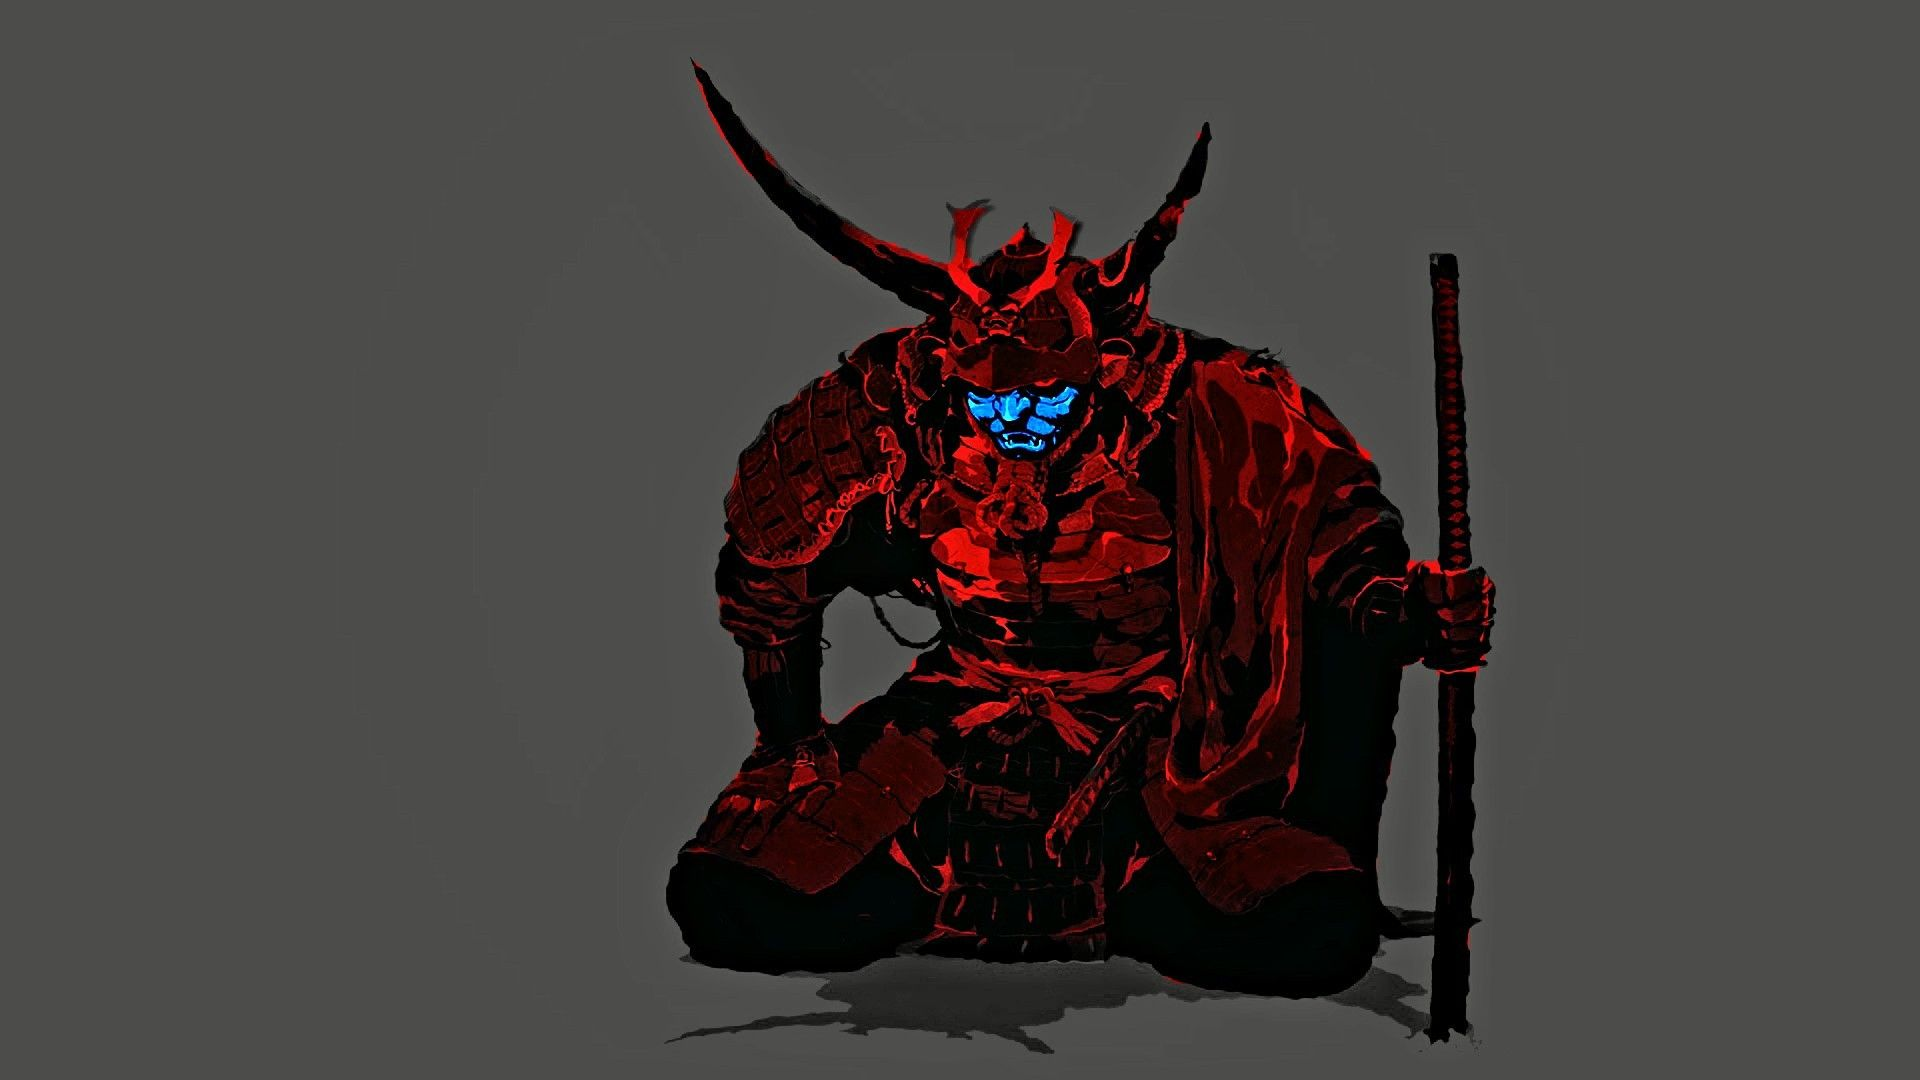 1920x1080 Wallpaper : illustration, minimalism, red, mask, blue, demon ...